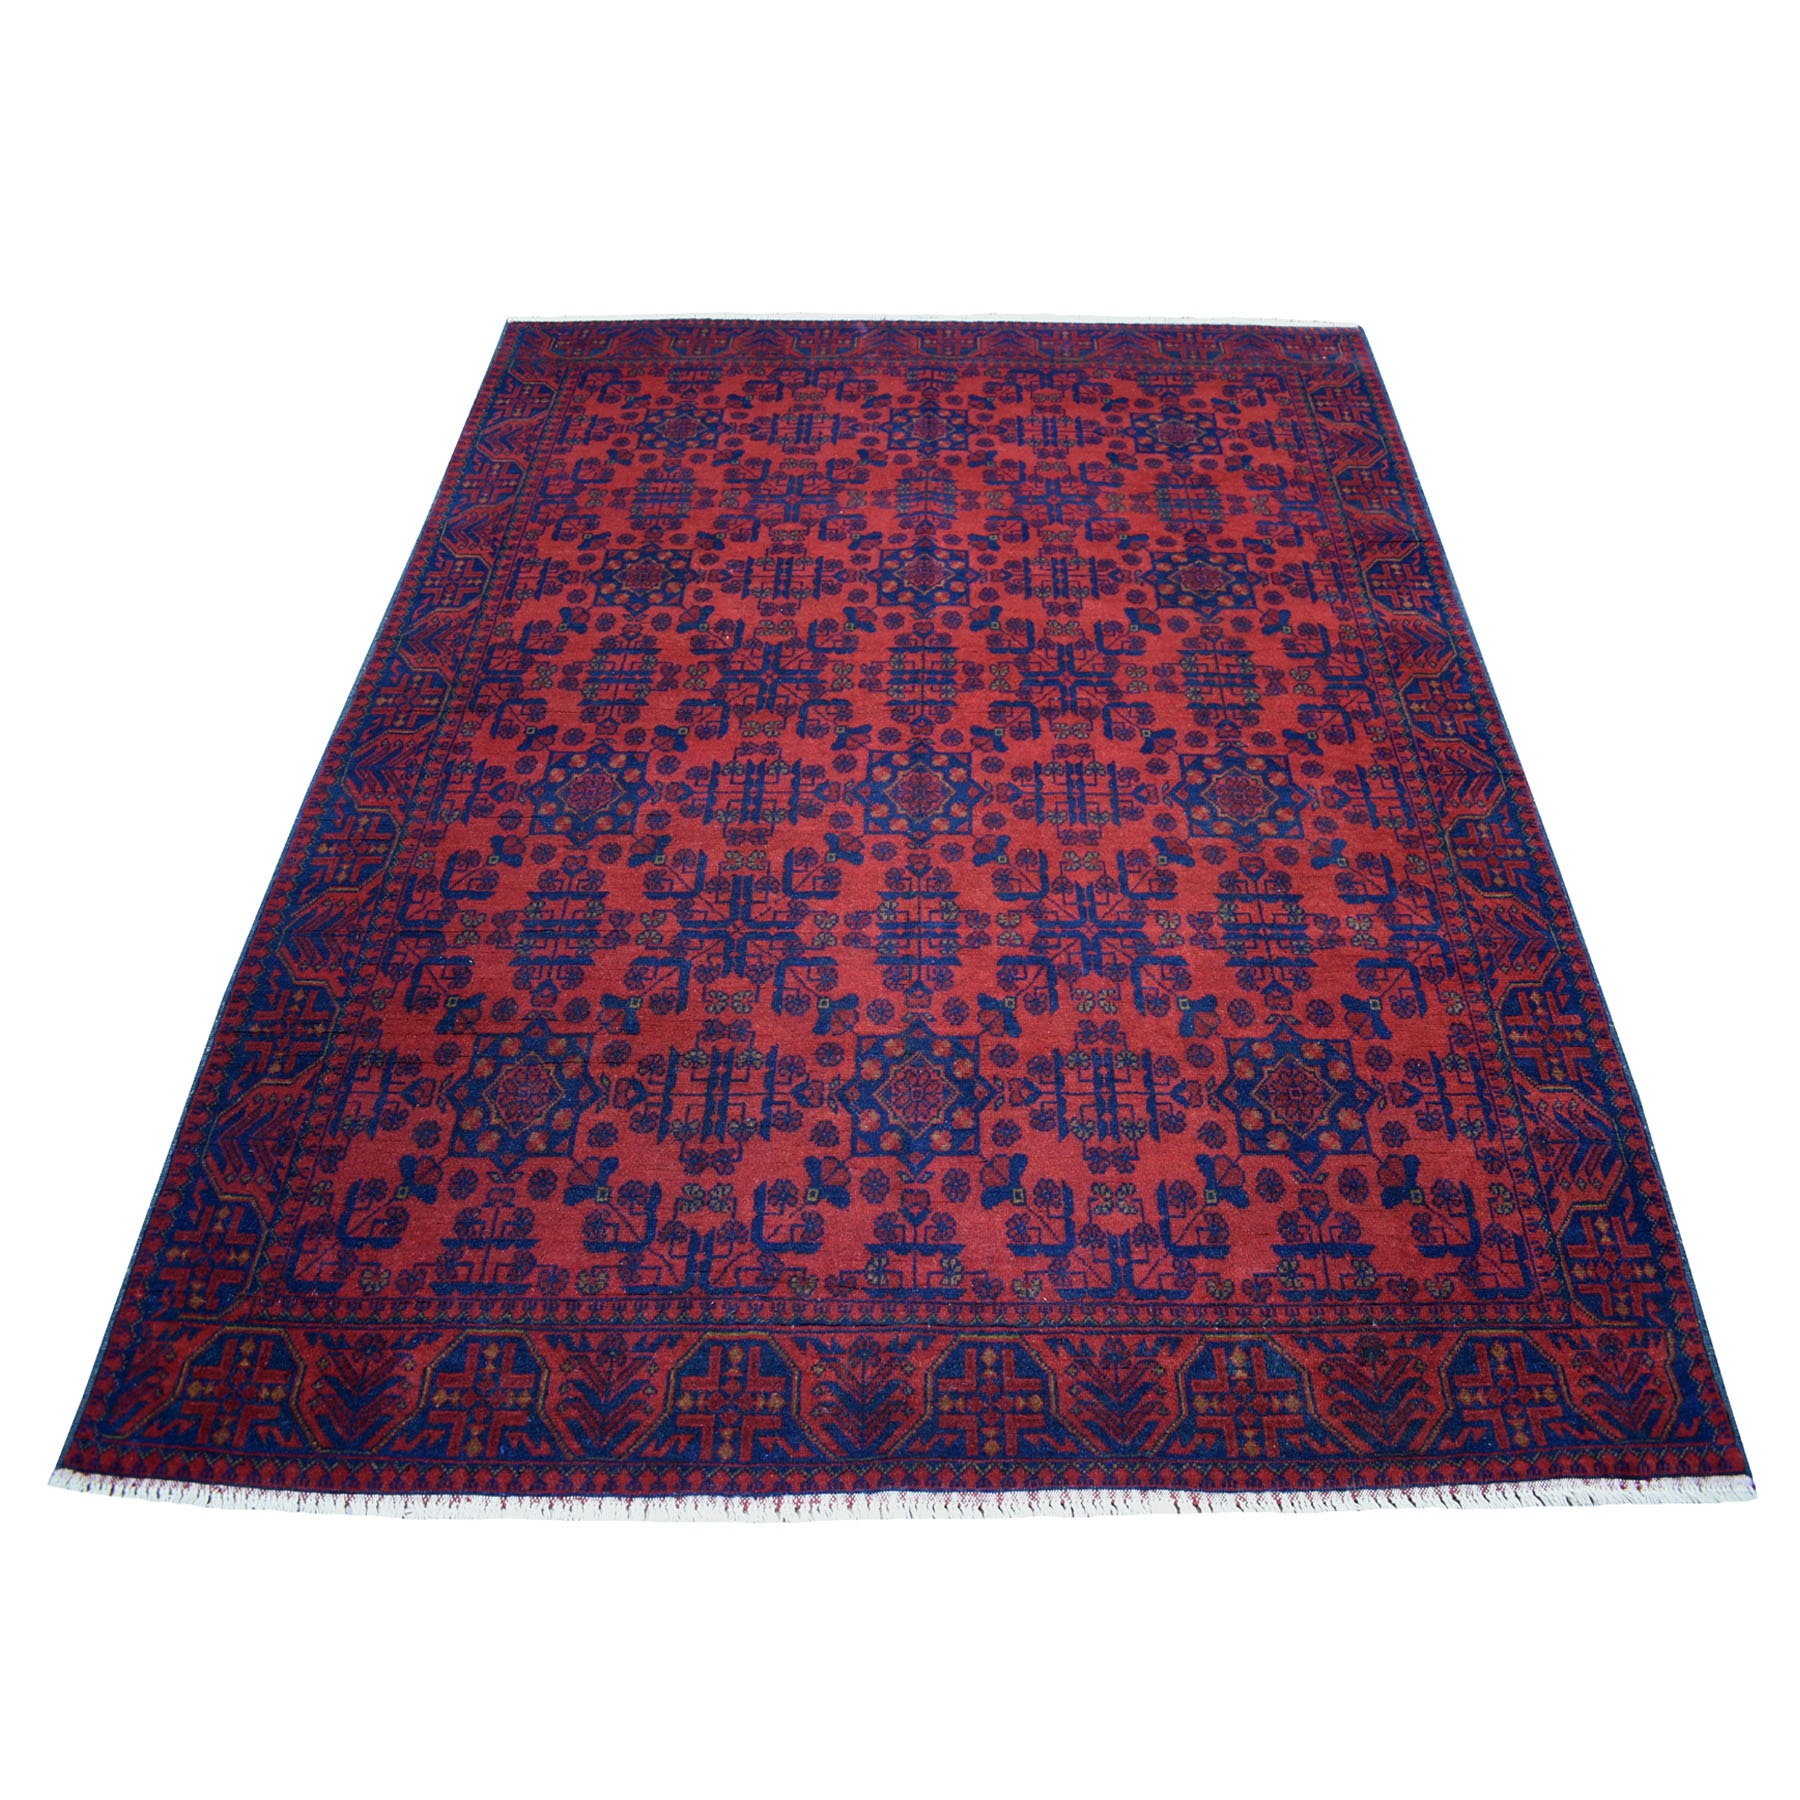 "5'9""X7'7"" Deep And Saturated Red Geometric Afghan Andkhoy Pure Wool Hand Knotted Oriental Rug moaec69a"